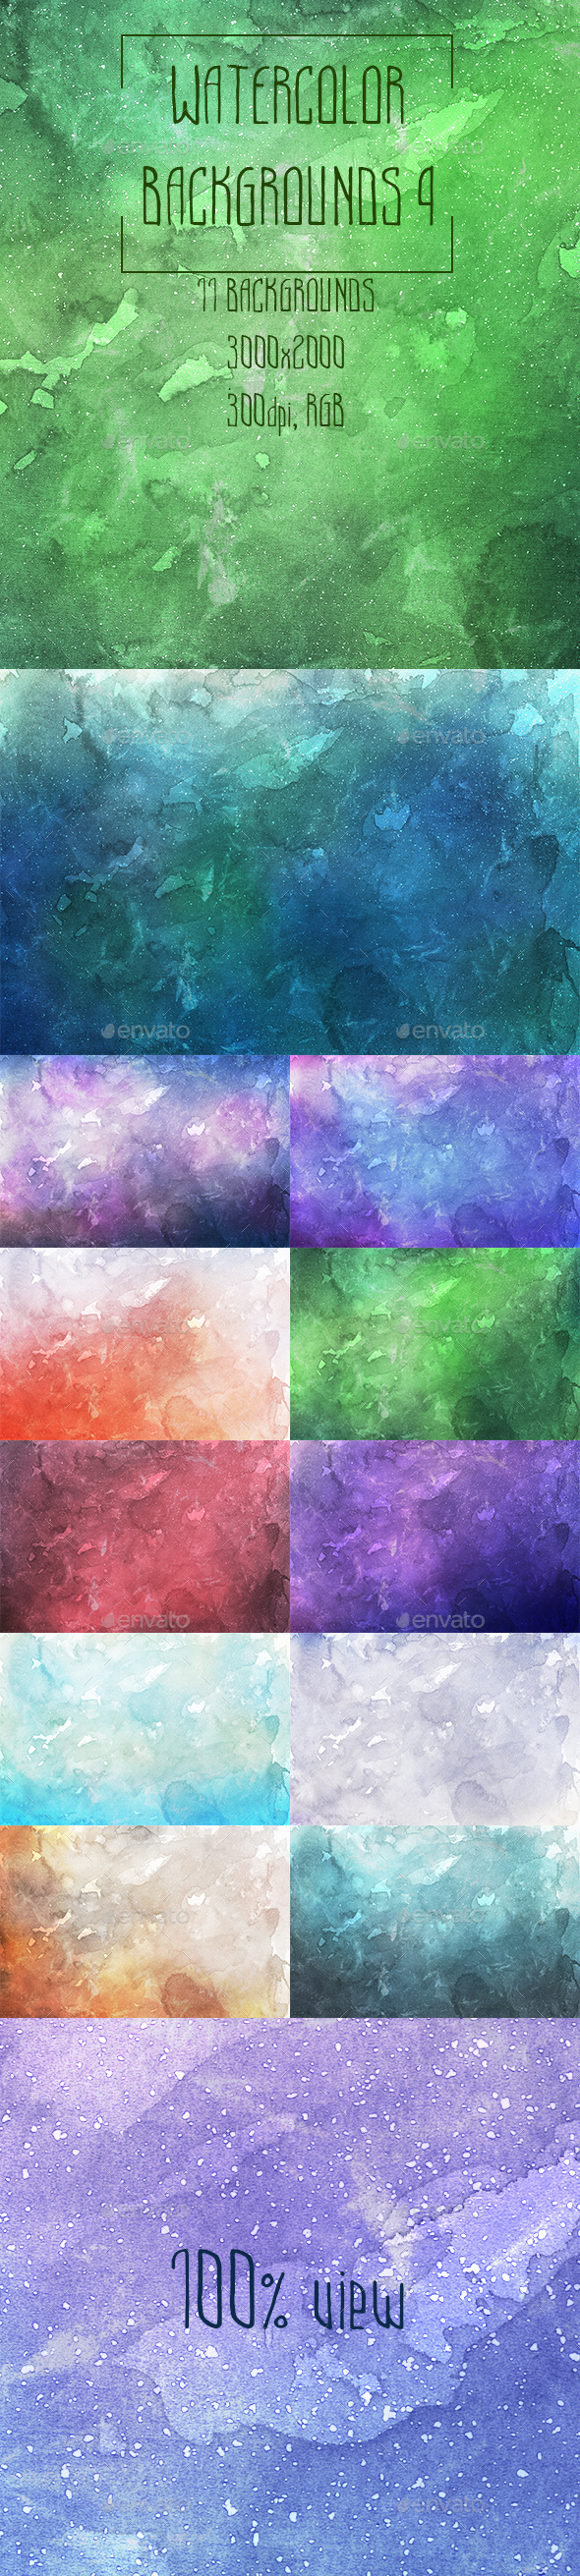 Watercolor Backgrounds 4 - Abstract Backgrounds